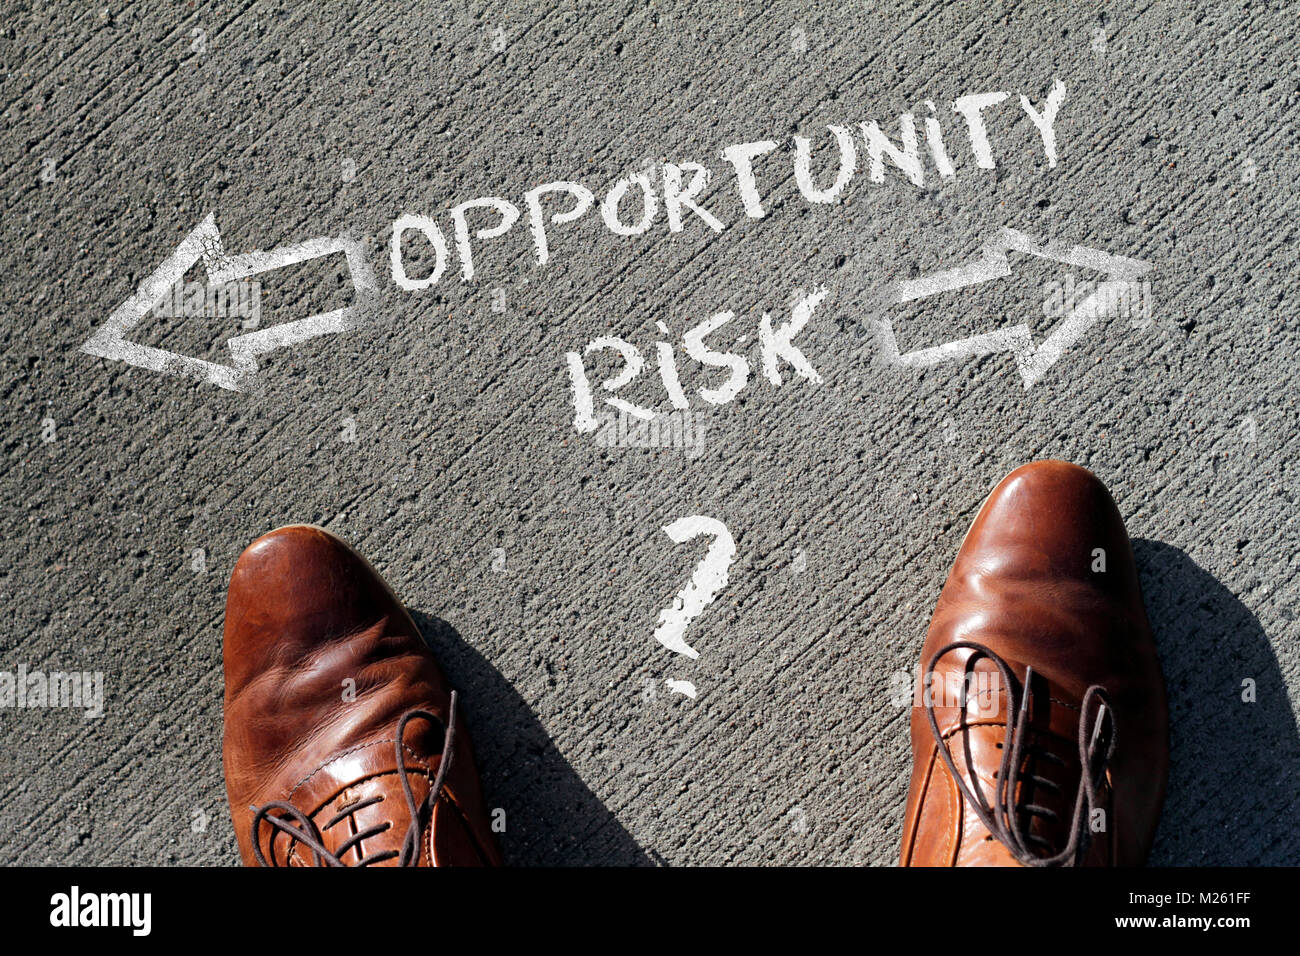 Time to decide: Risk or Opportunity? - Stock Image